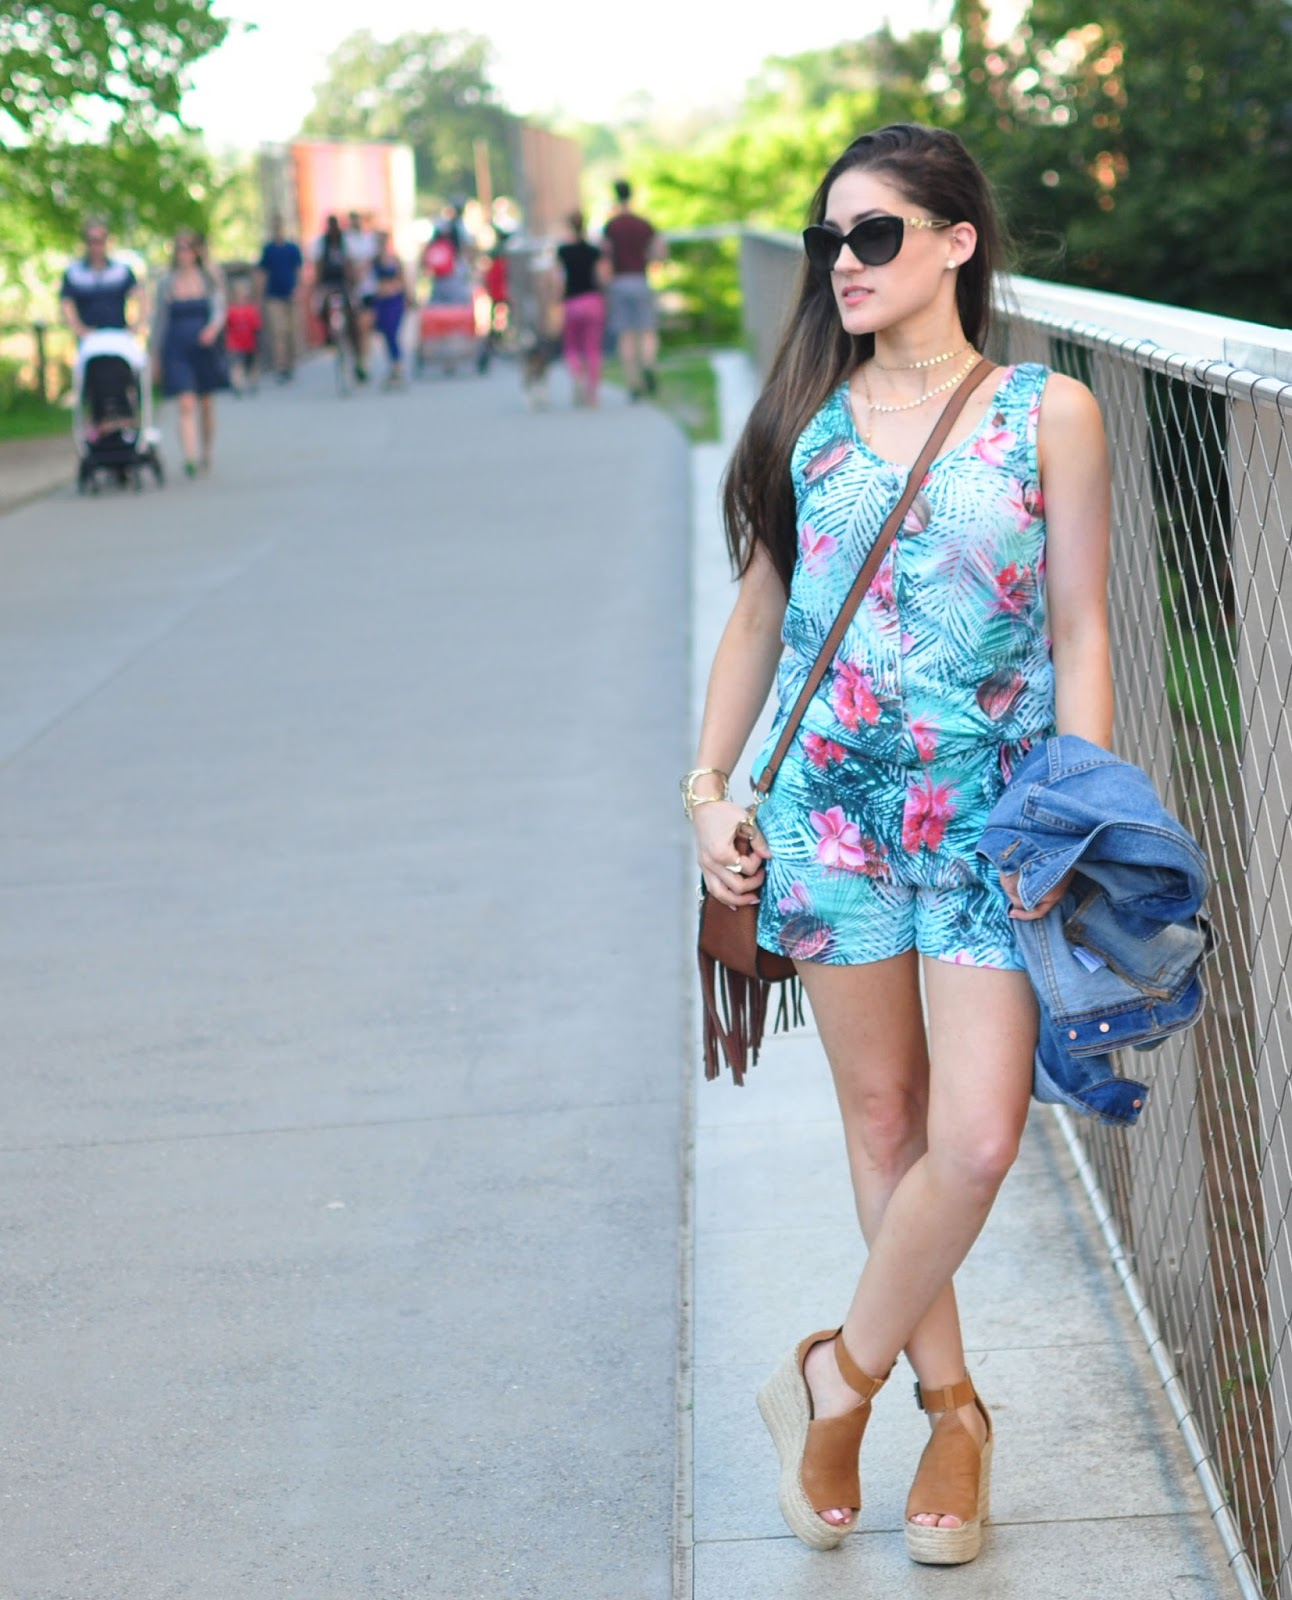 Palm Print Romper via the Luvit App - modeled by Erica Valentin